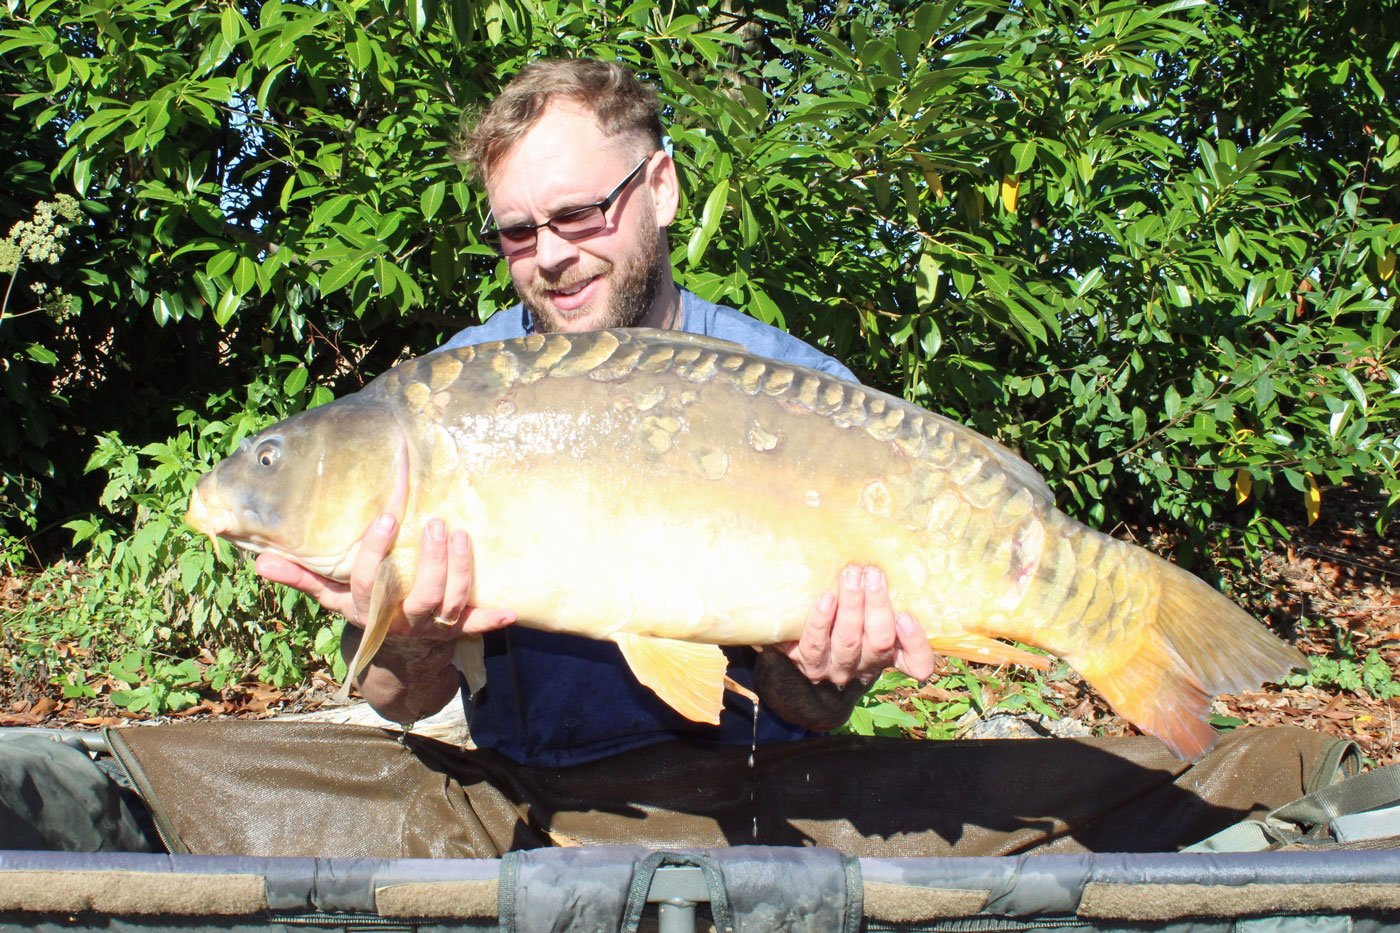 Rob with The Duchess at 27lbs